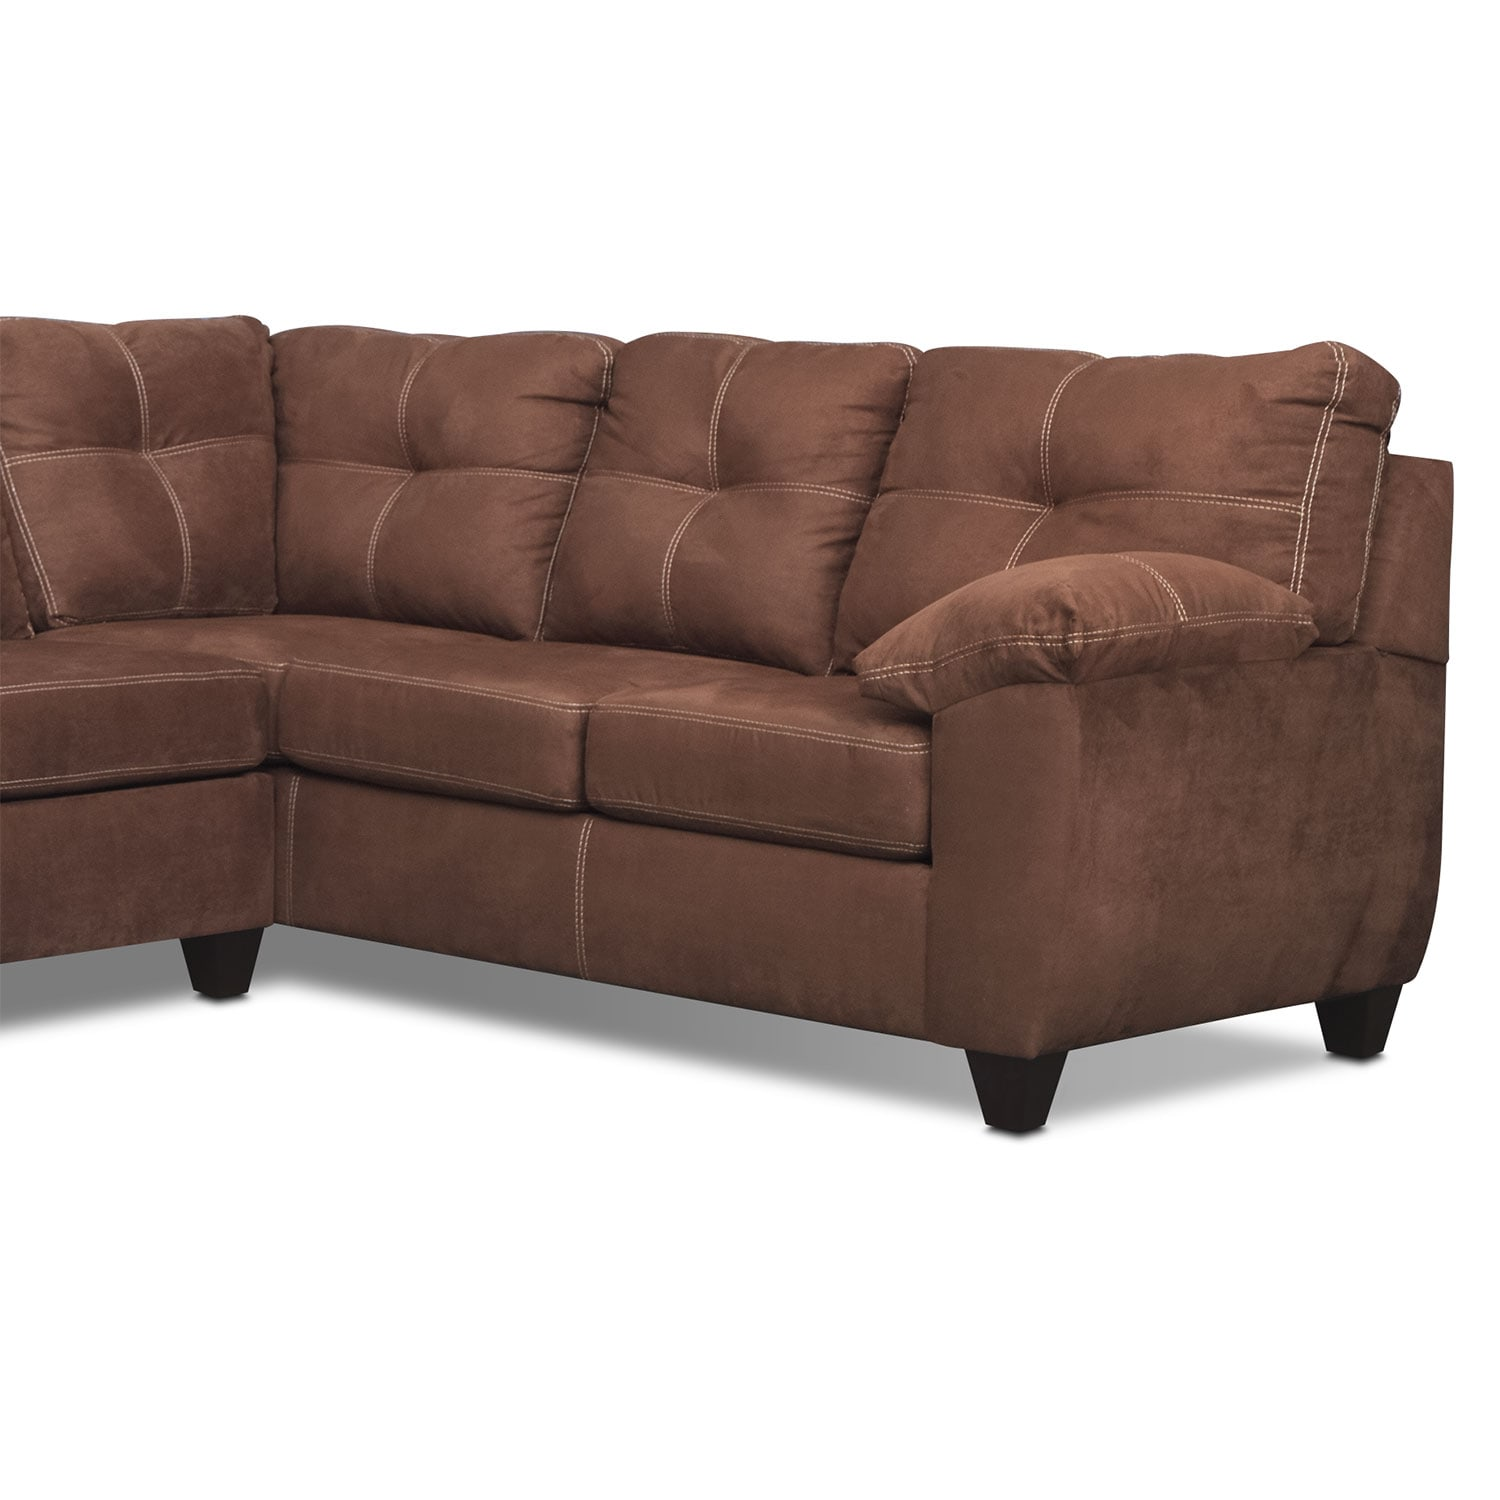 Ricardo 2 Piece Memory Foam Sleeper Sectional with Right Facing